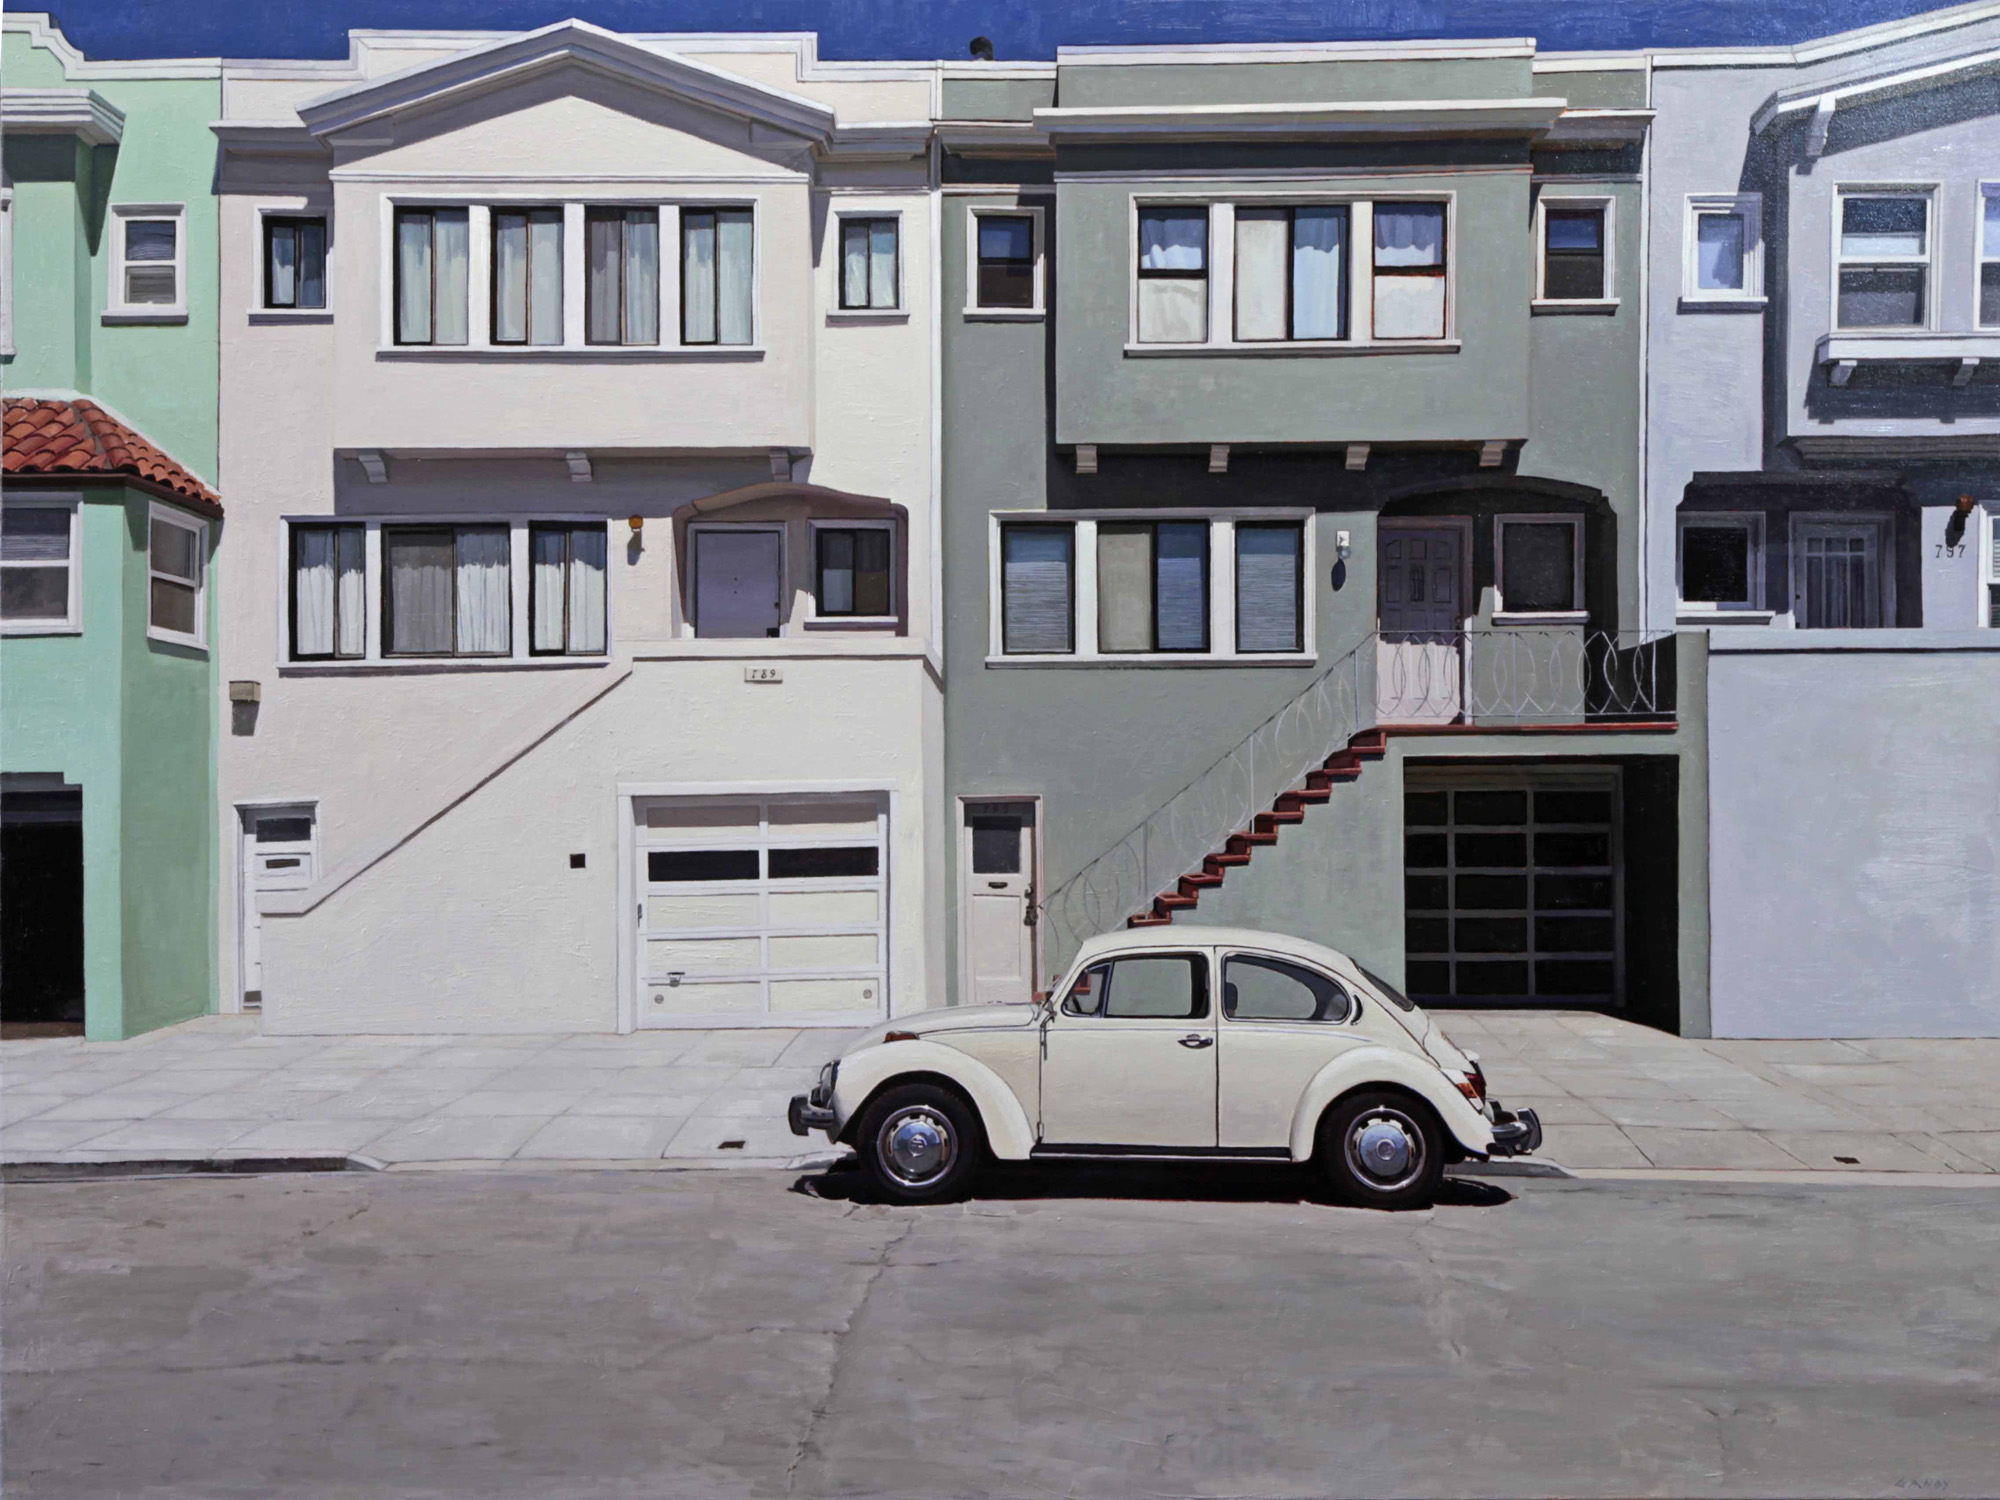 VW Bug in the Mission